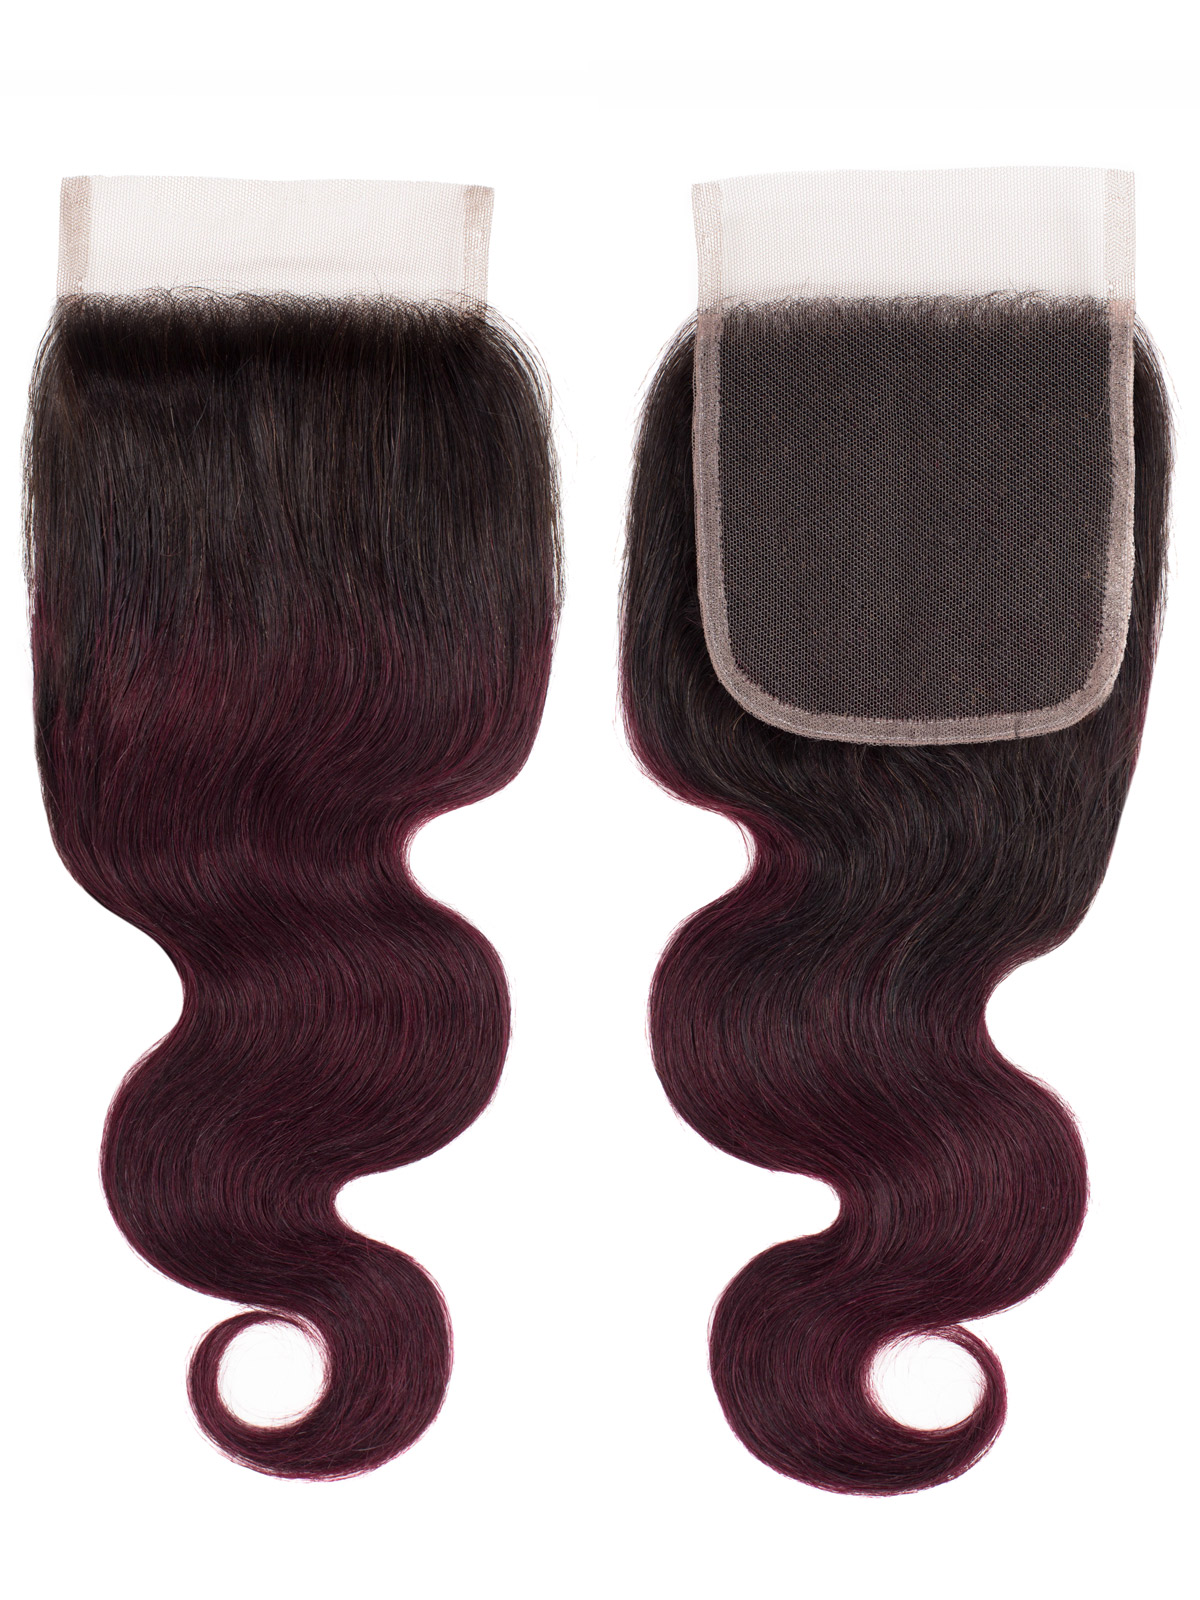 Sahar Essential Unprocessed Brazilian Top Lace Closure 4 inch X 4 inch - Body Wave